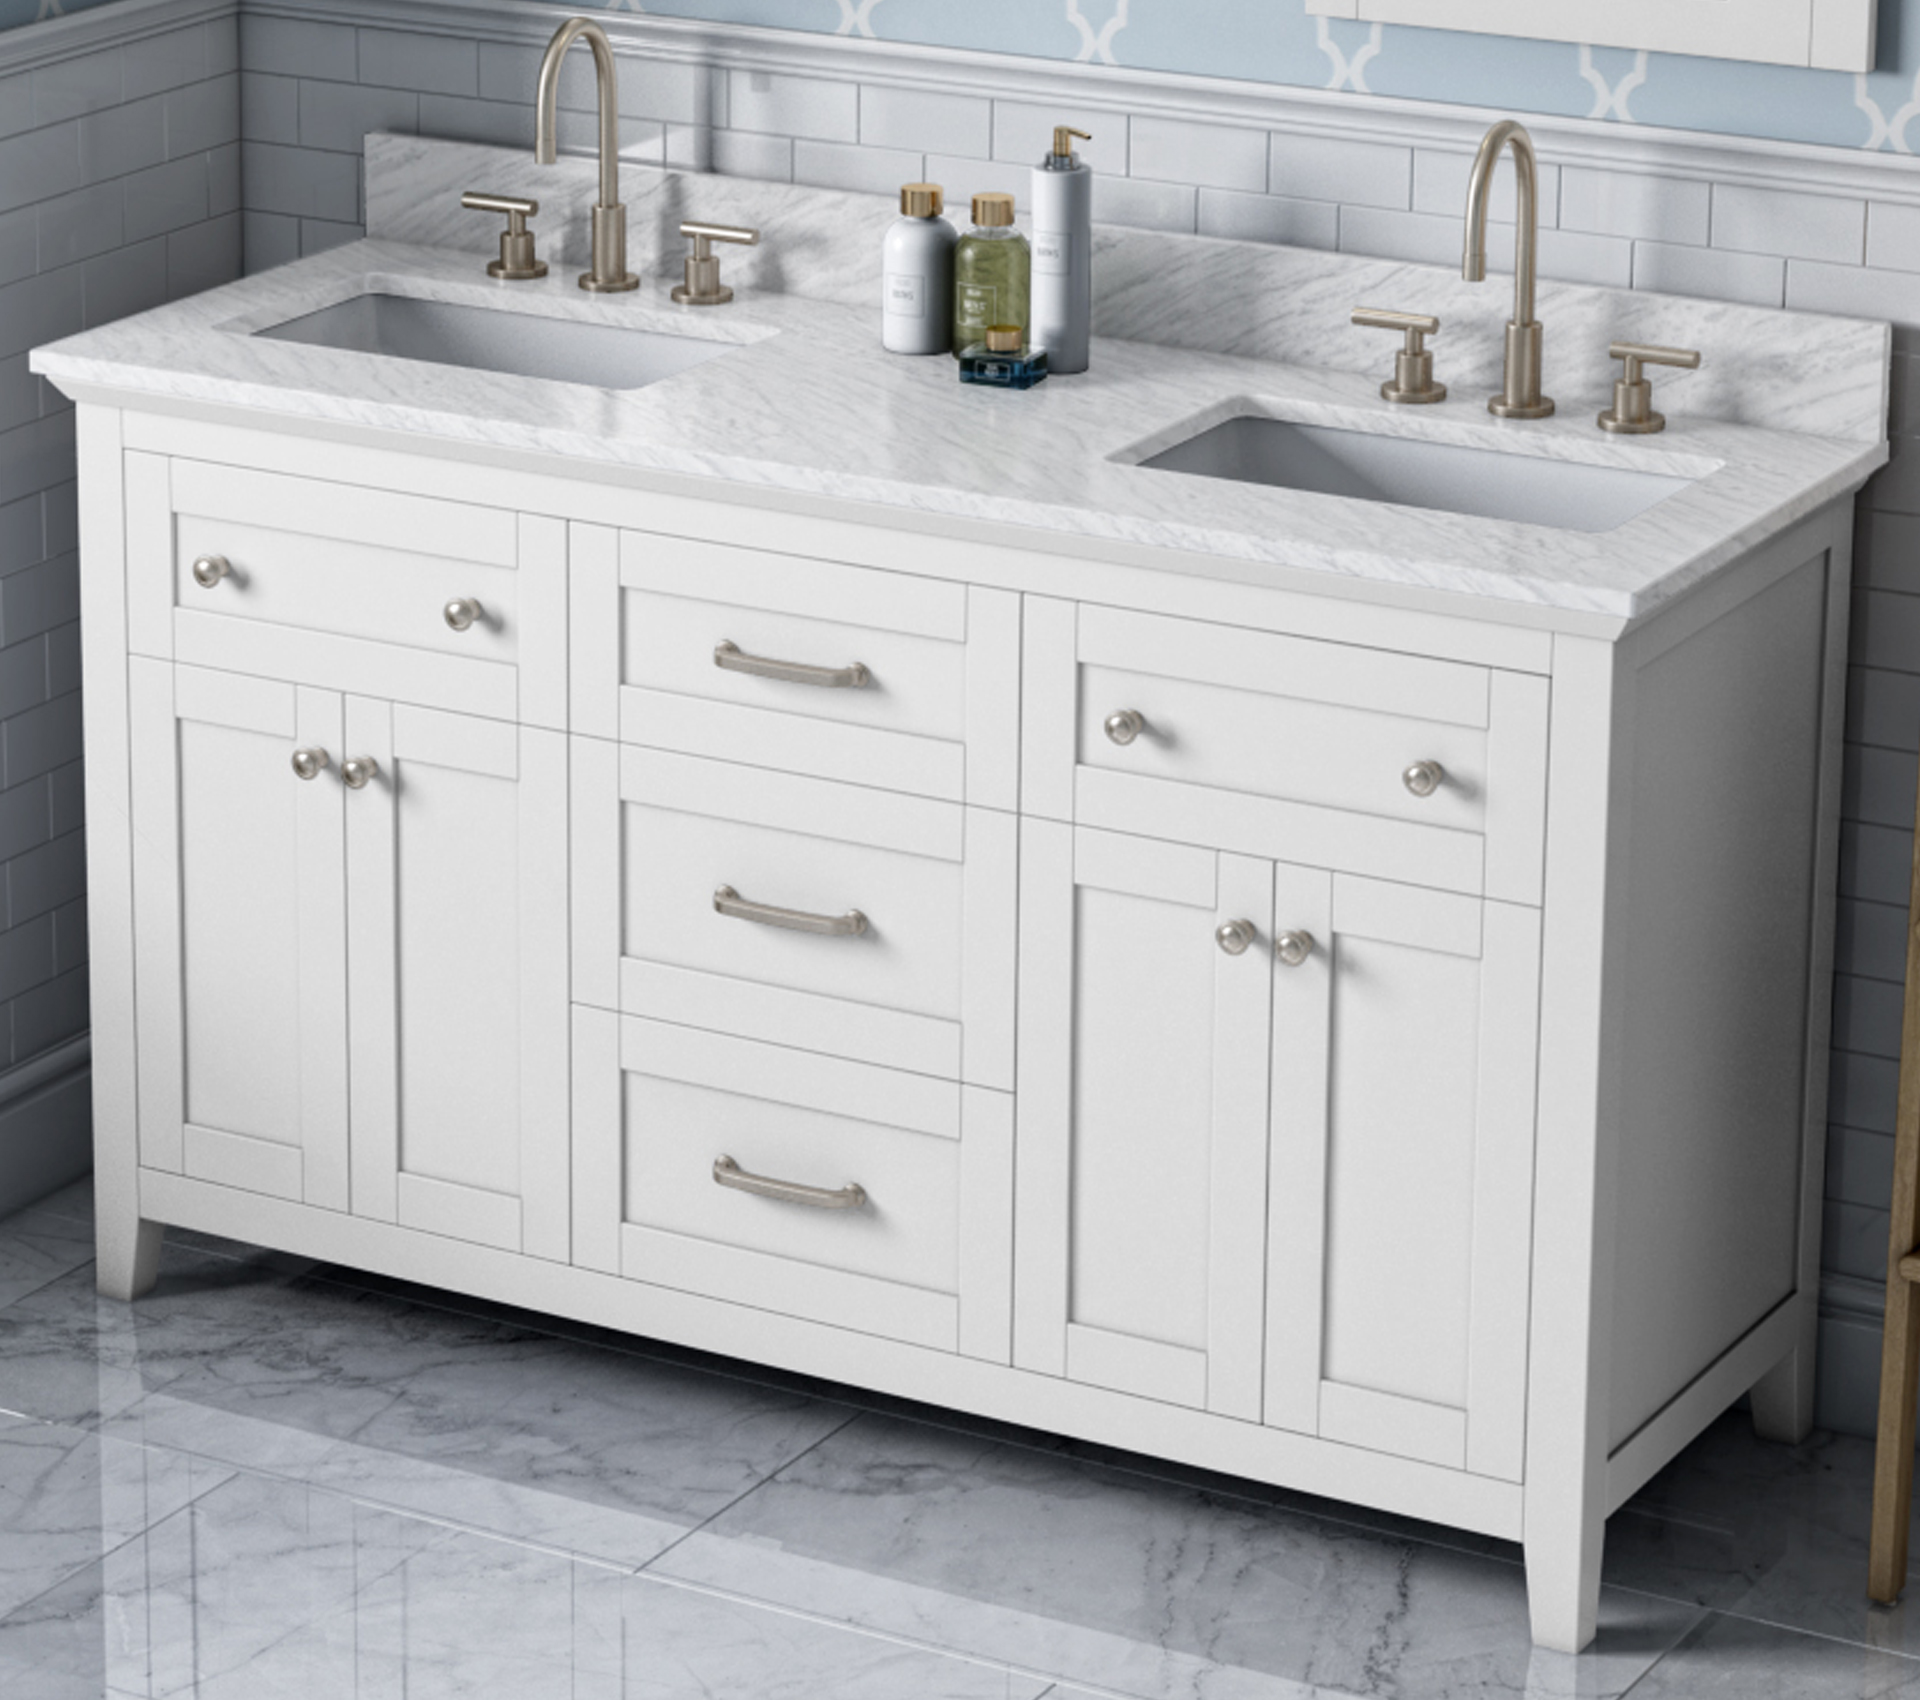 "60"" White Double Bowl Bathroom Vanity, White Carrara Marble Vanity Top, Two Undermount Rectangle Bowls"